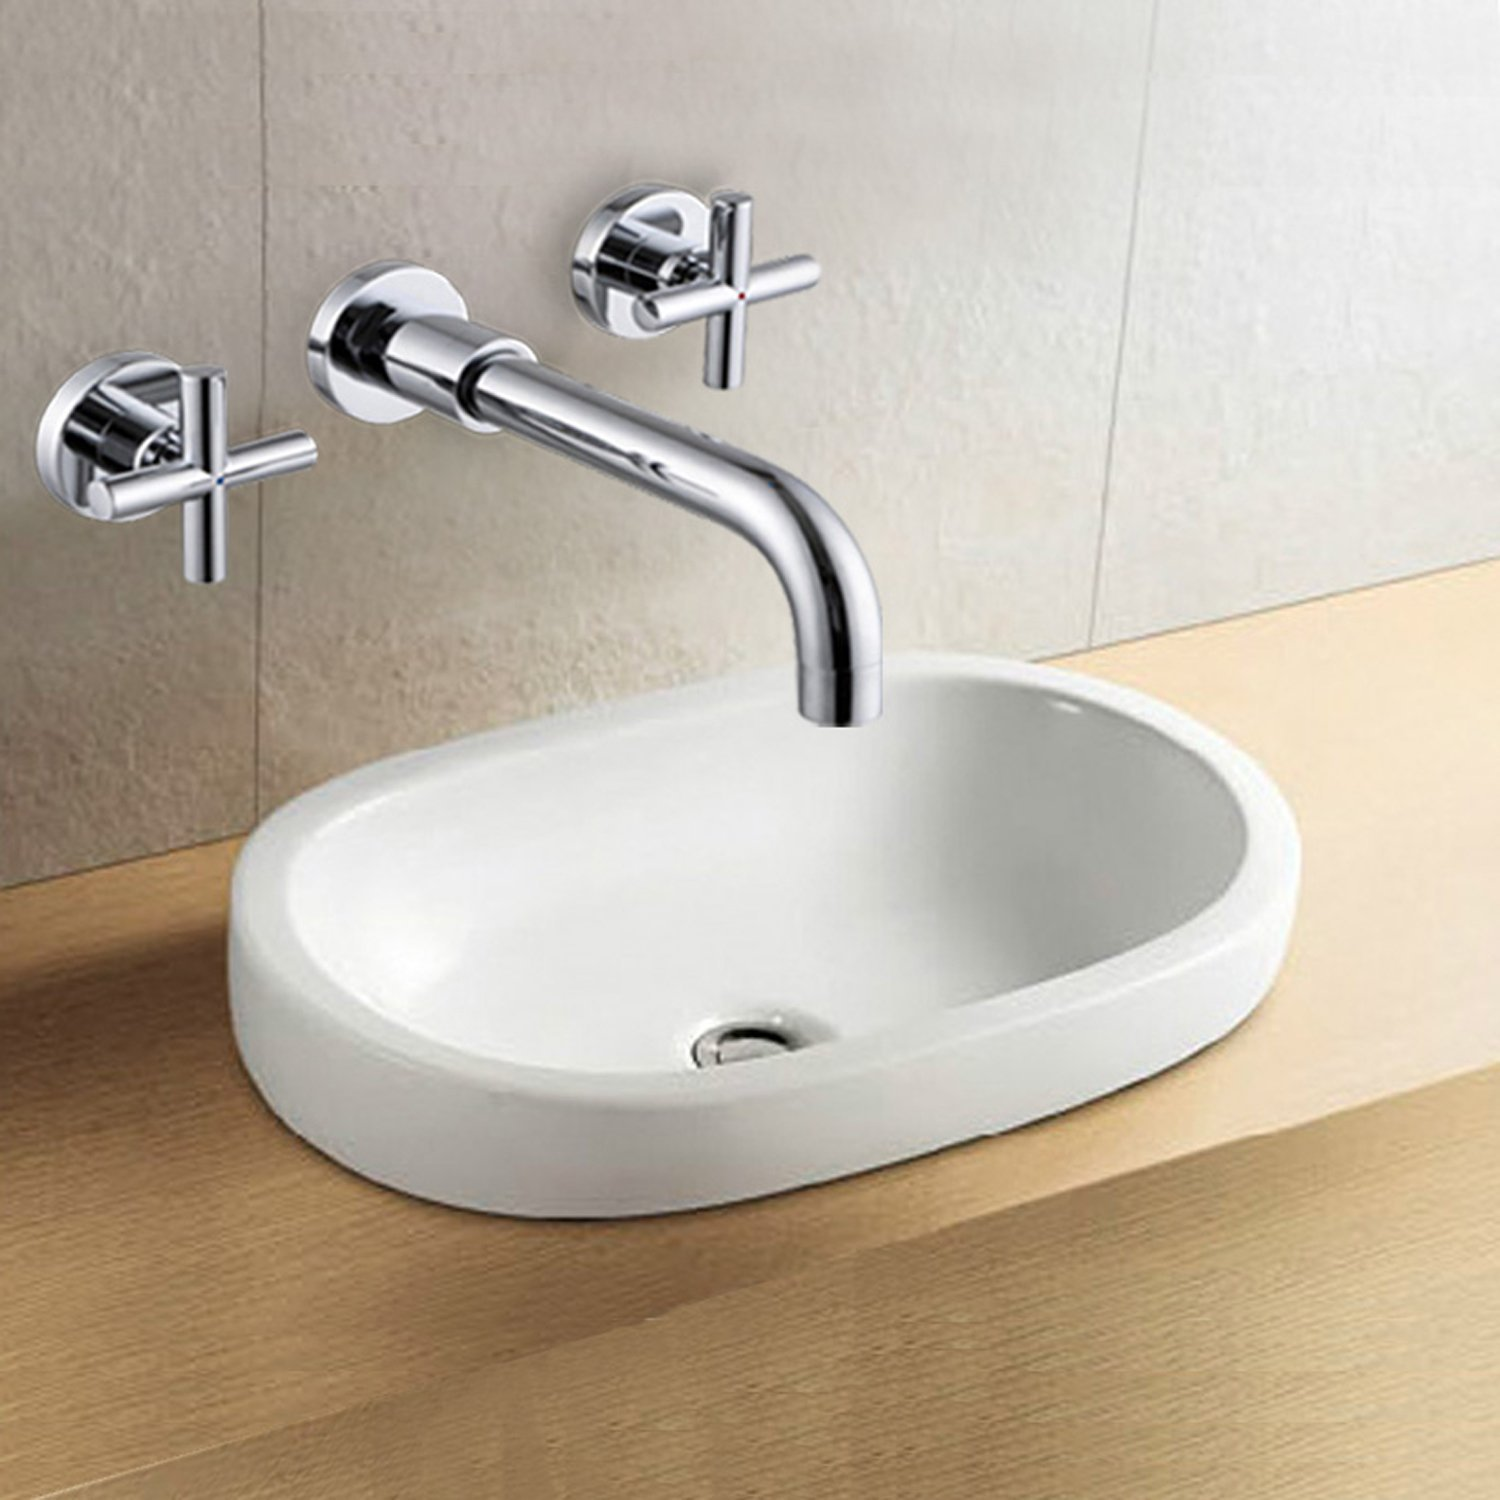 Lightinthebox Wall Mount Chrome Solid Brass Two Handle Sink Faucet Single Hole Bathtub Bath Shower Mixer Taps Lavatory Shower Facuets Ceramiv Valve Included Plumbing Fixtures Vessel Sink Bar Faucets by LightInTheBox